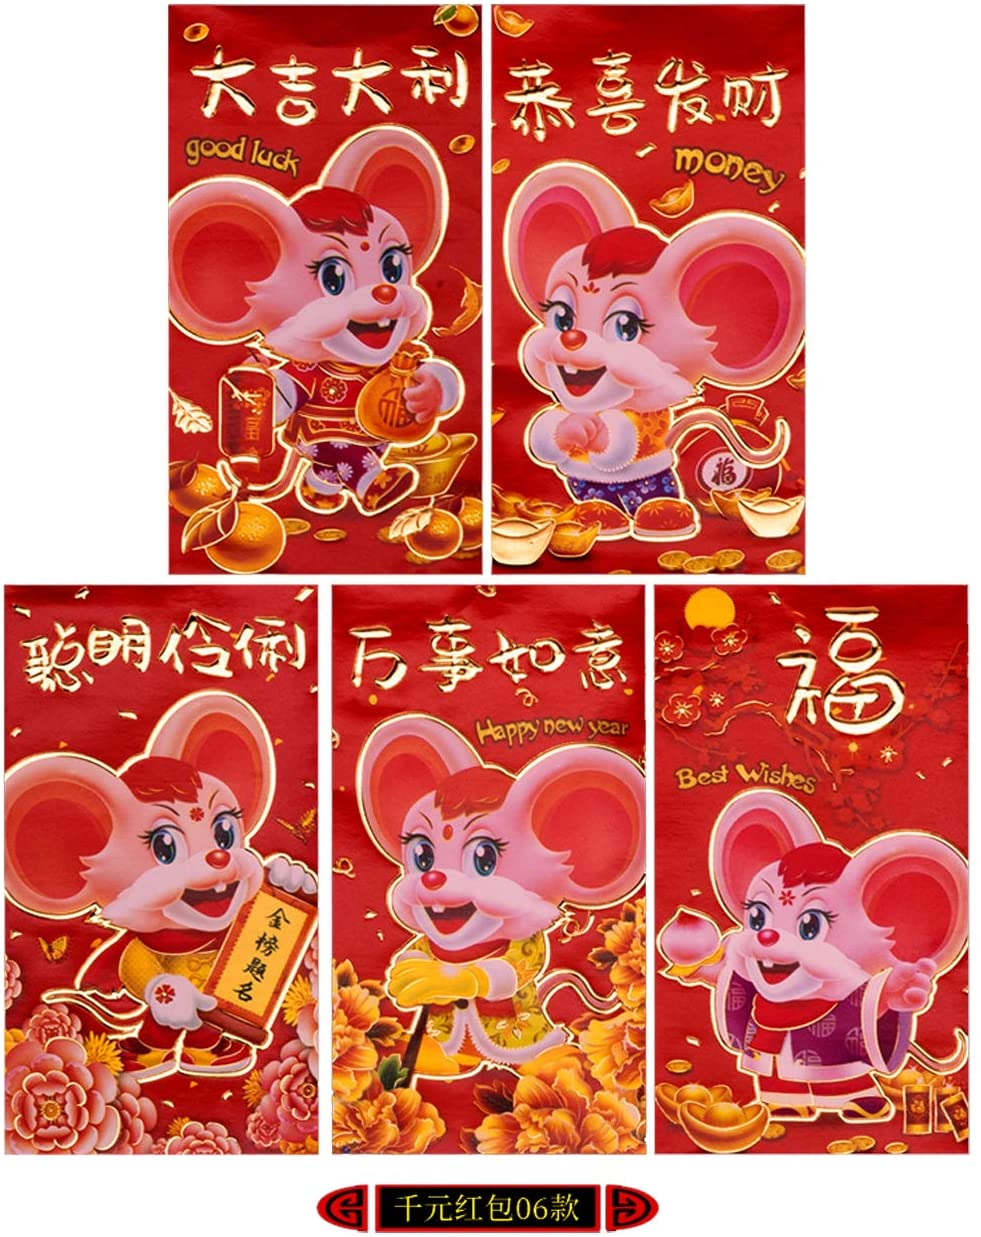 64 Pcs Chinese Red Envelopes Lucky Money Packets New Year Hongbao for Wedding Birthday Chinese 2020 Spring Festival